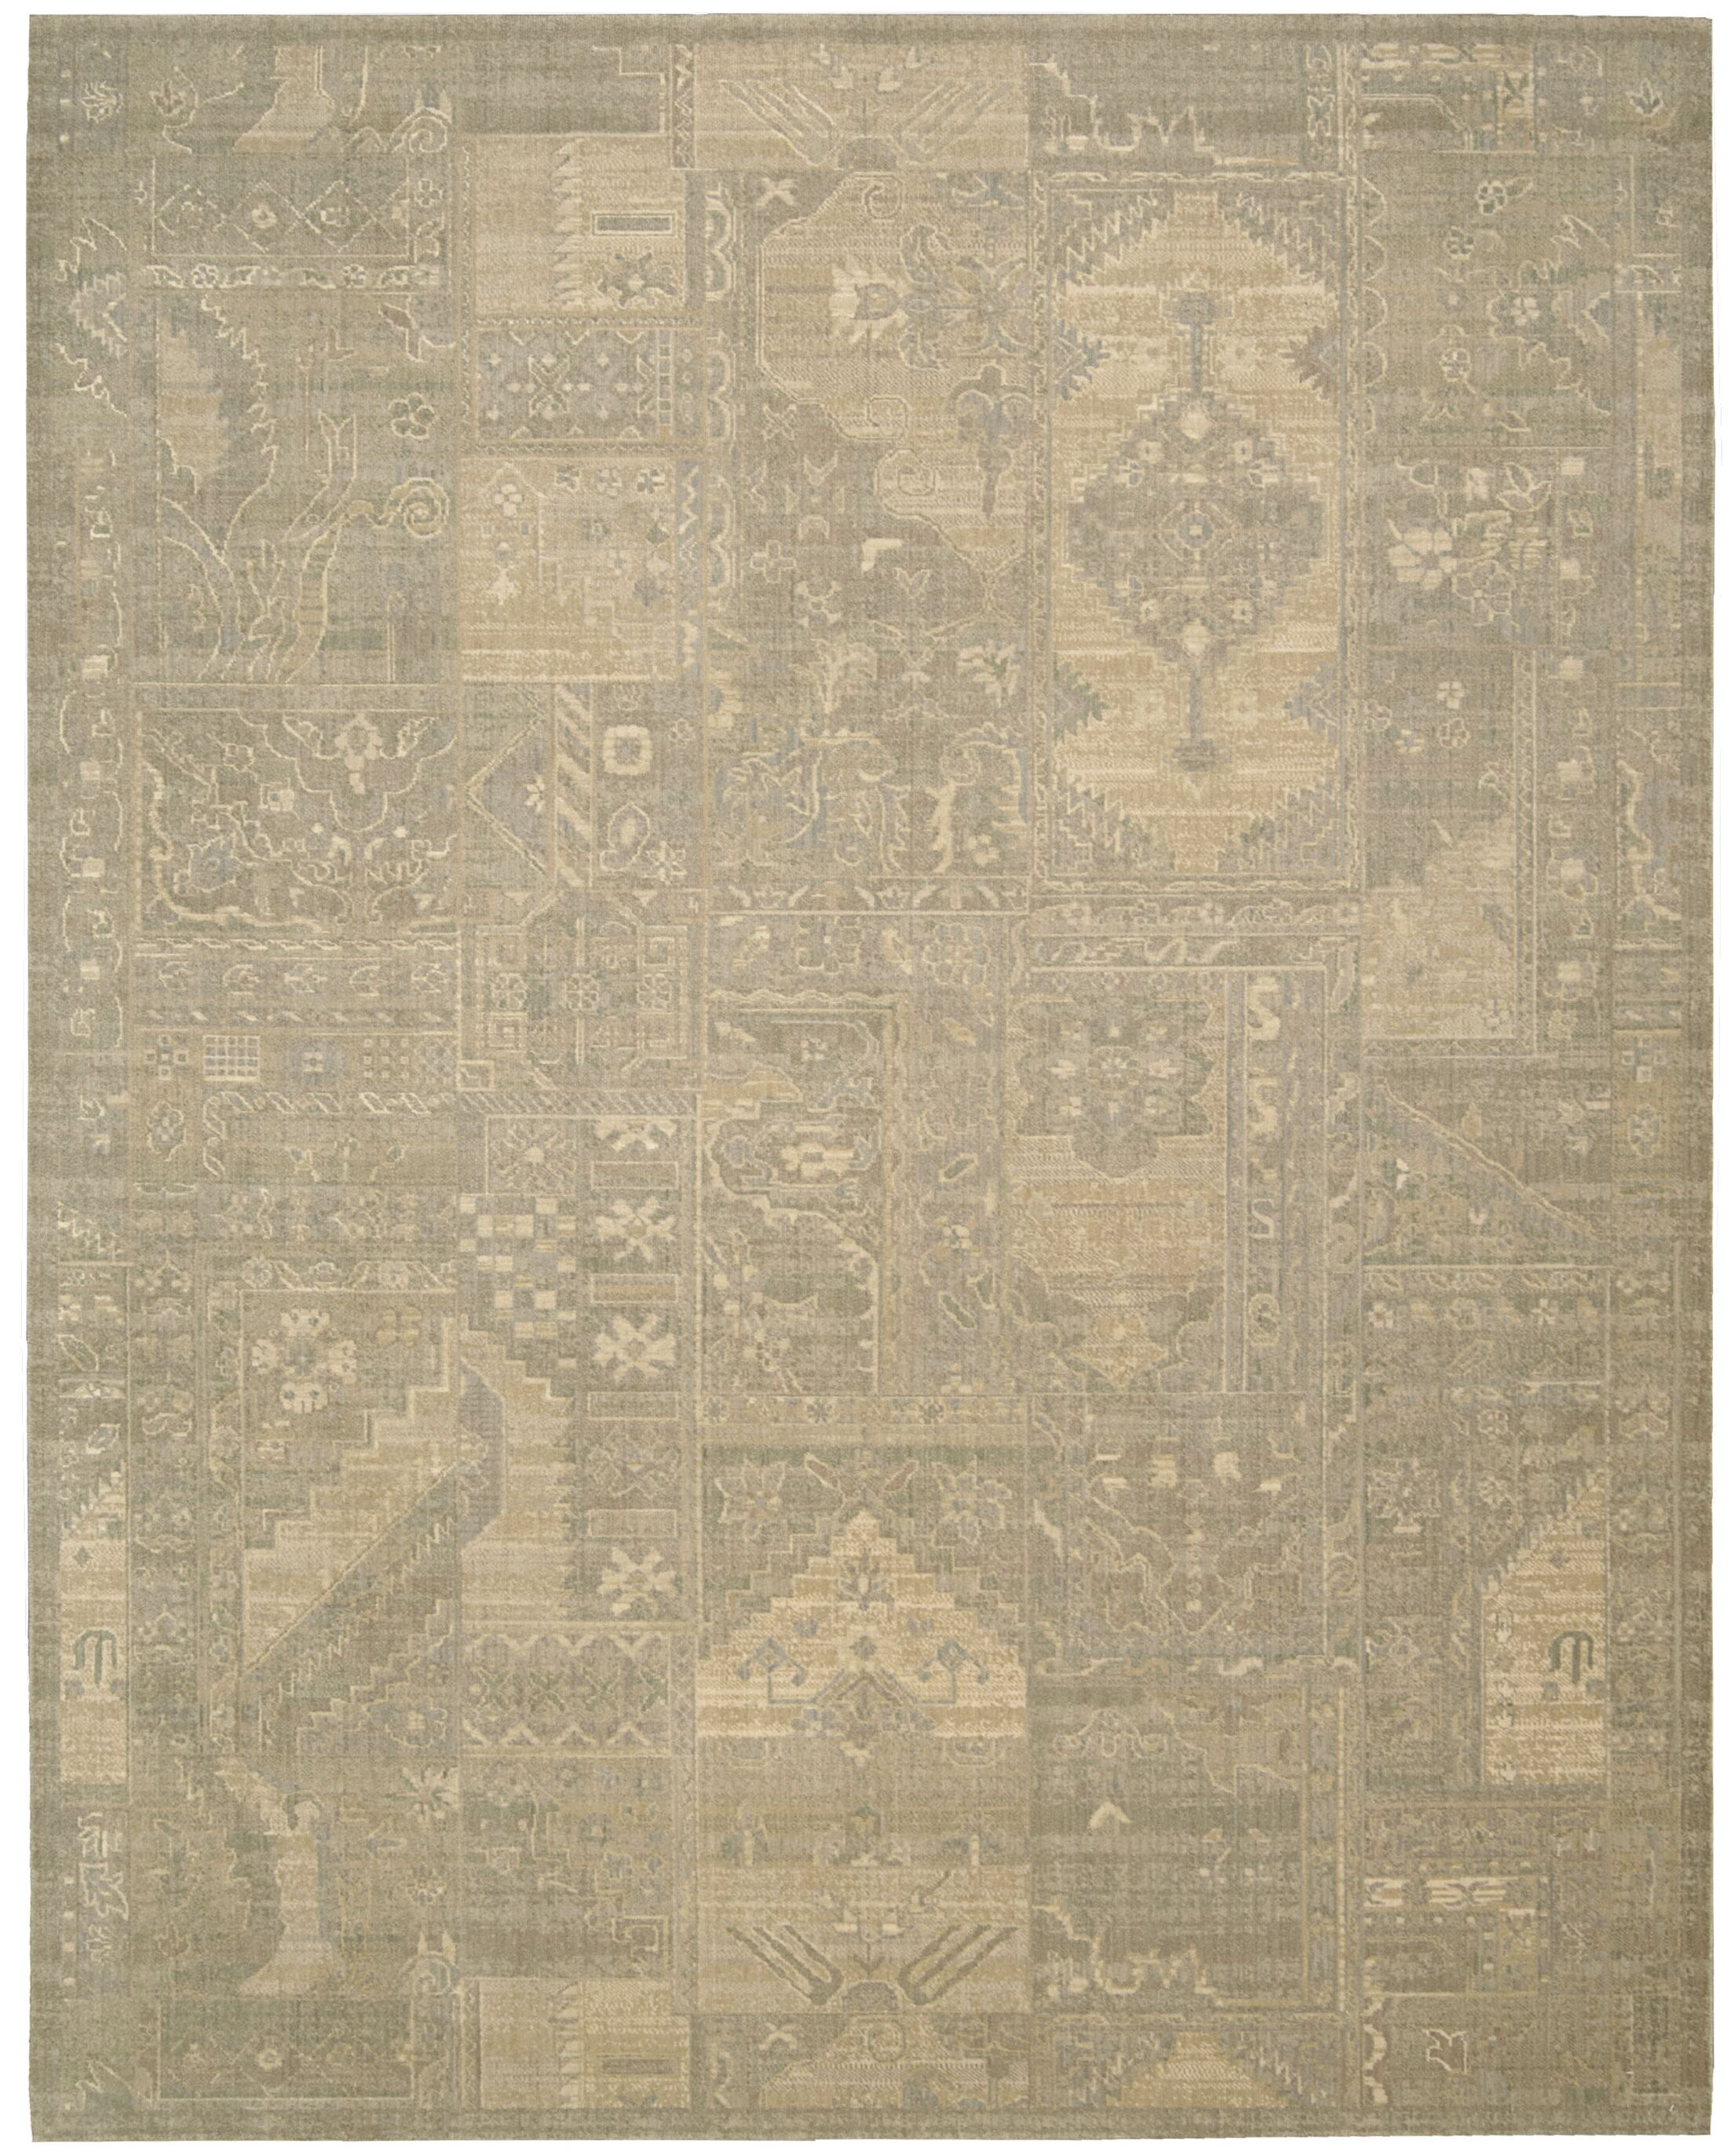 Ardale Wool Gray Area Rug Rug Size: Rectangle 5'6